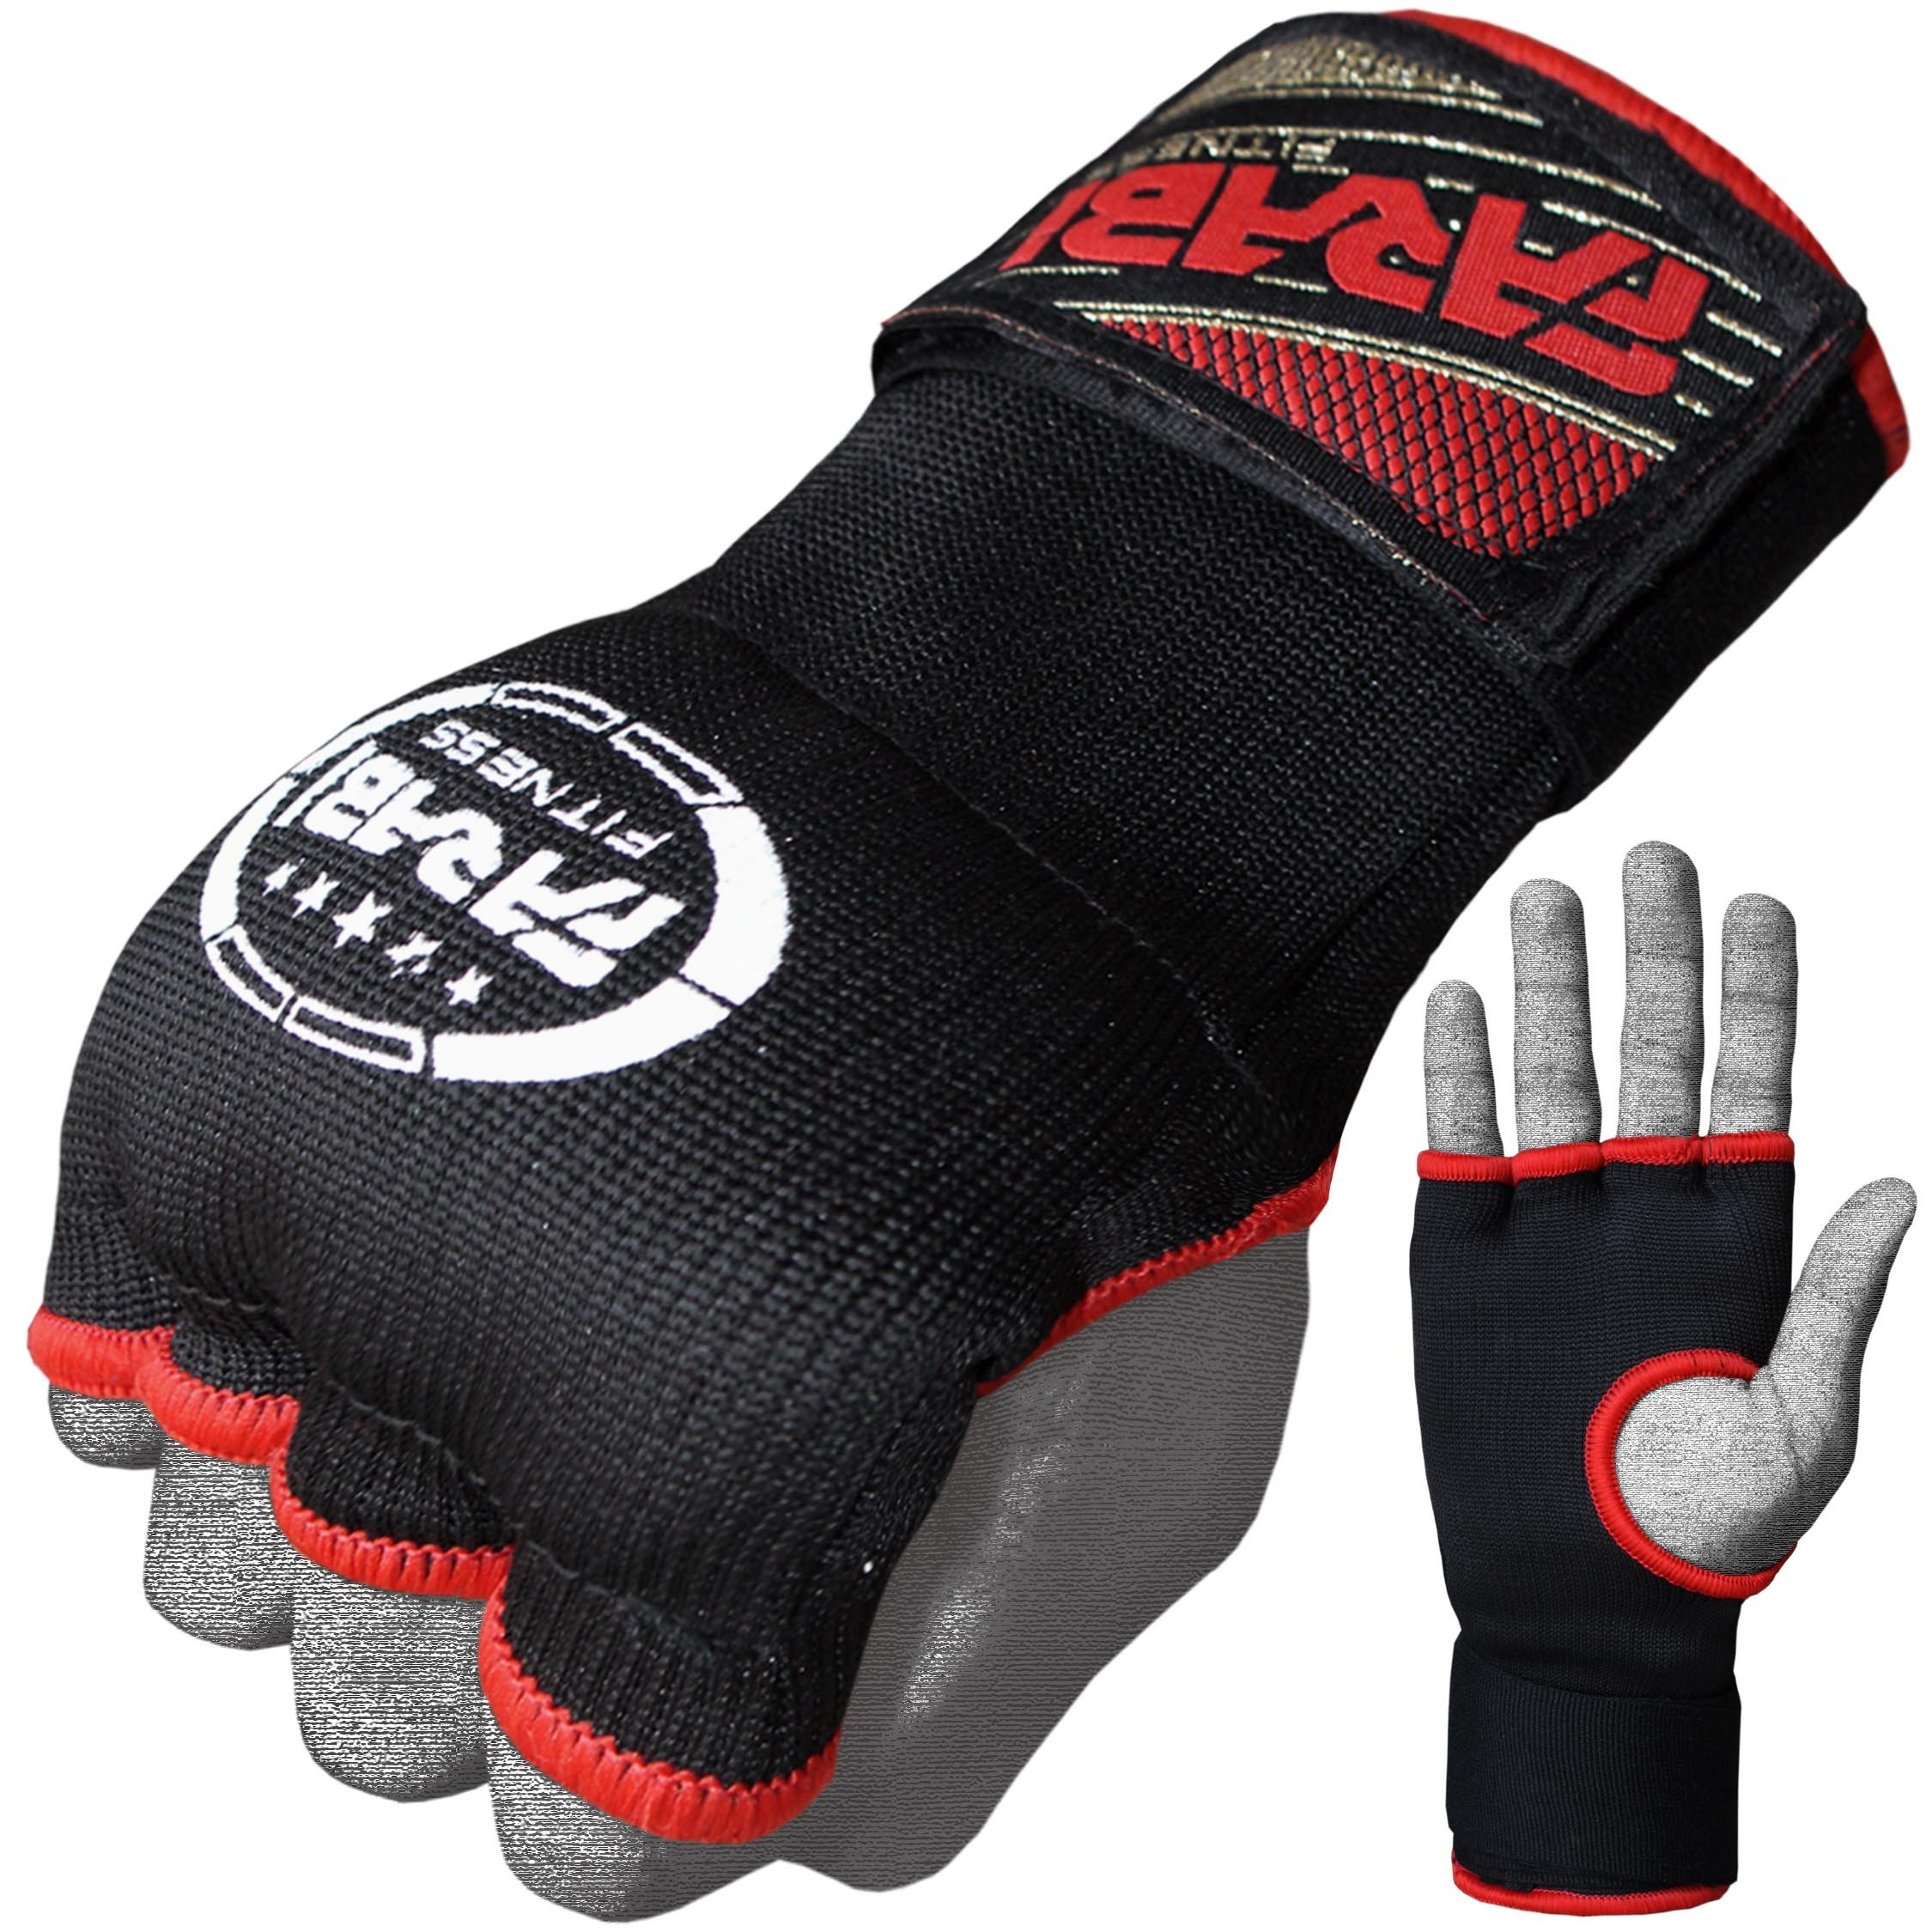 Fitness Inner Gloves: Farabi Hybrid Weight Lifting Gym Fitness Workout Inner